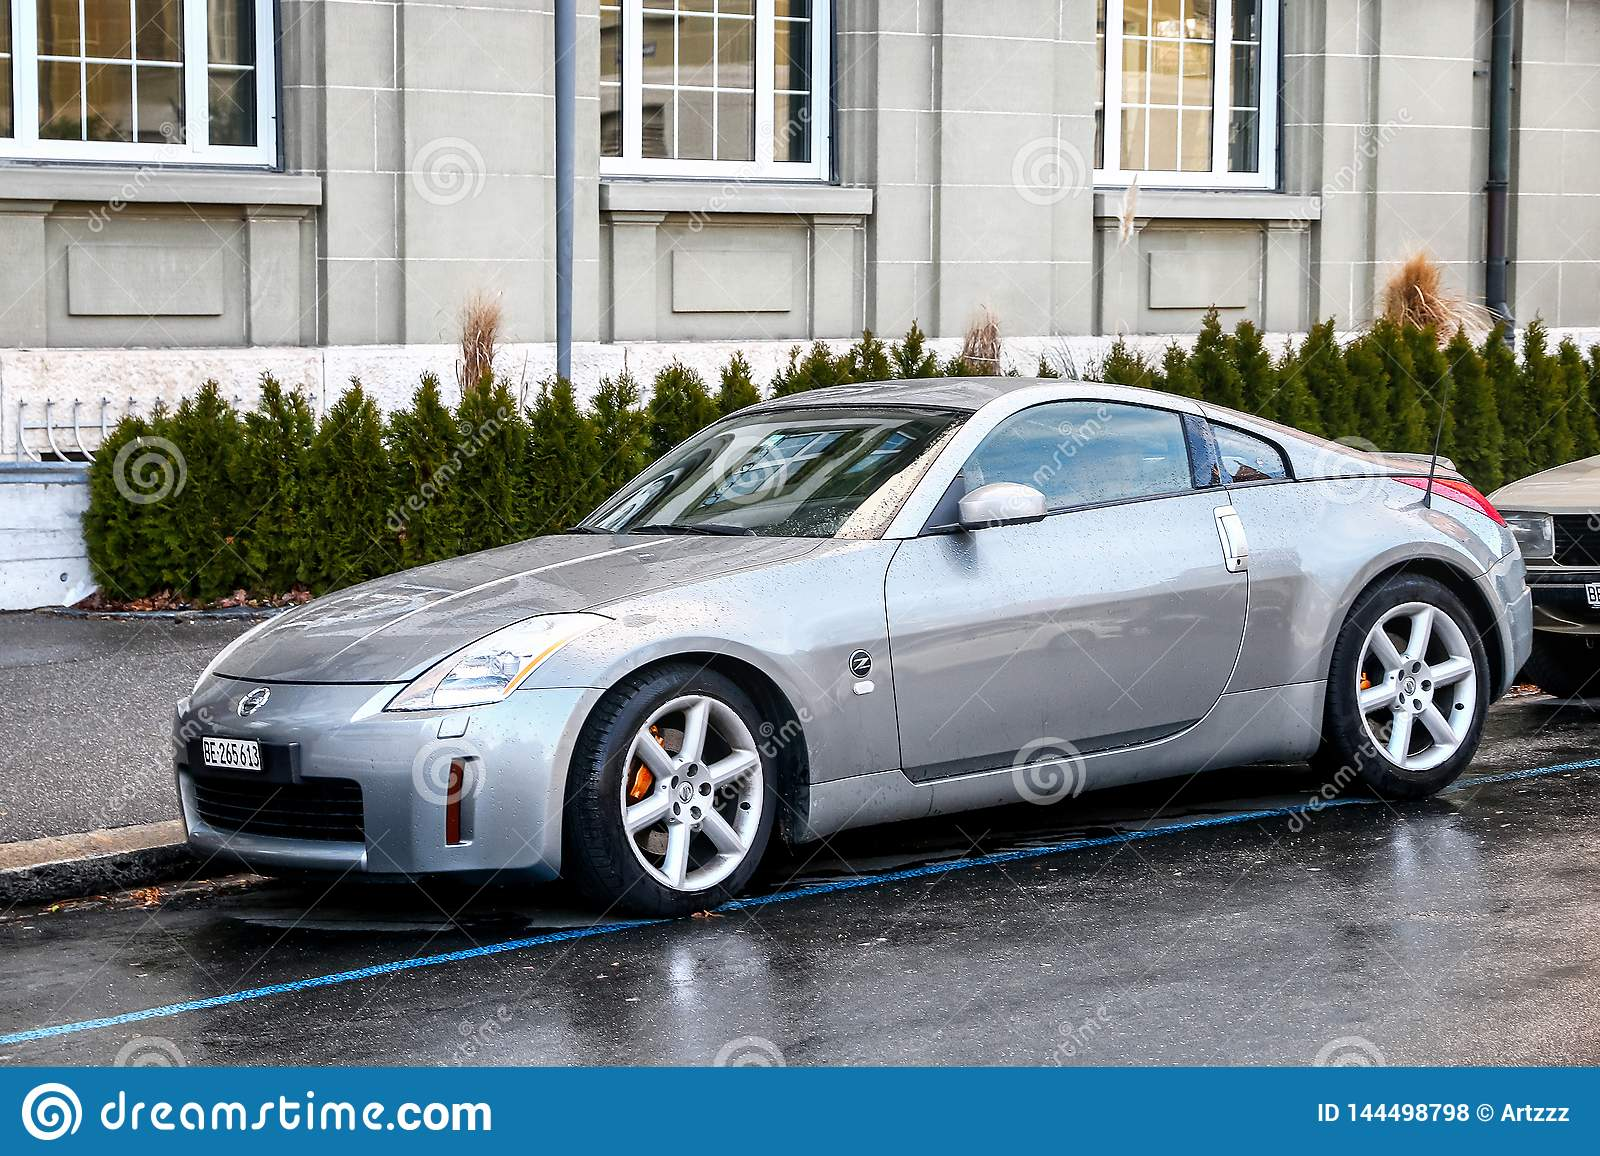 Nissan 350z Editorial Stock Photo Image Of Design Aged 144498798